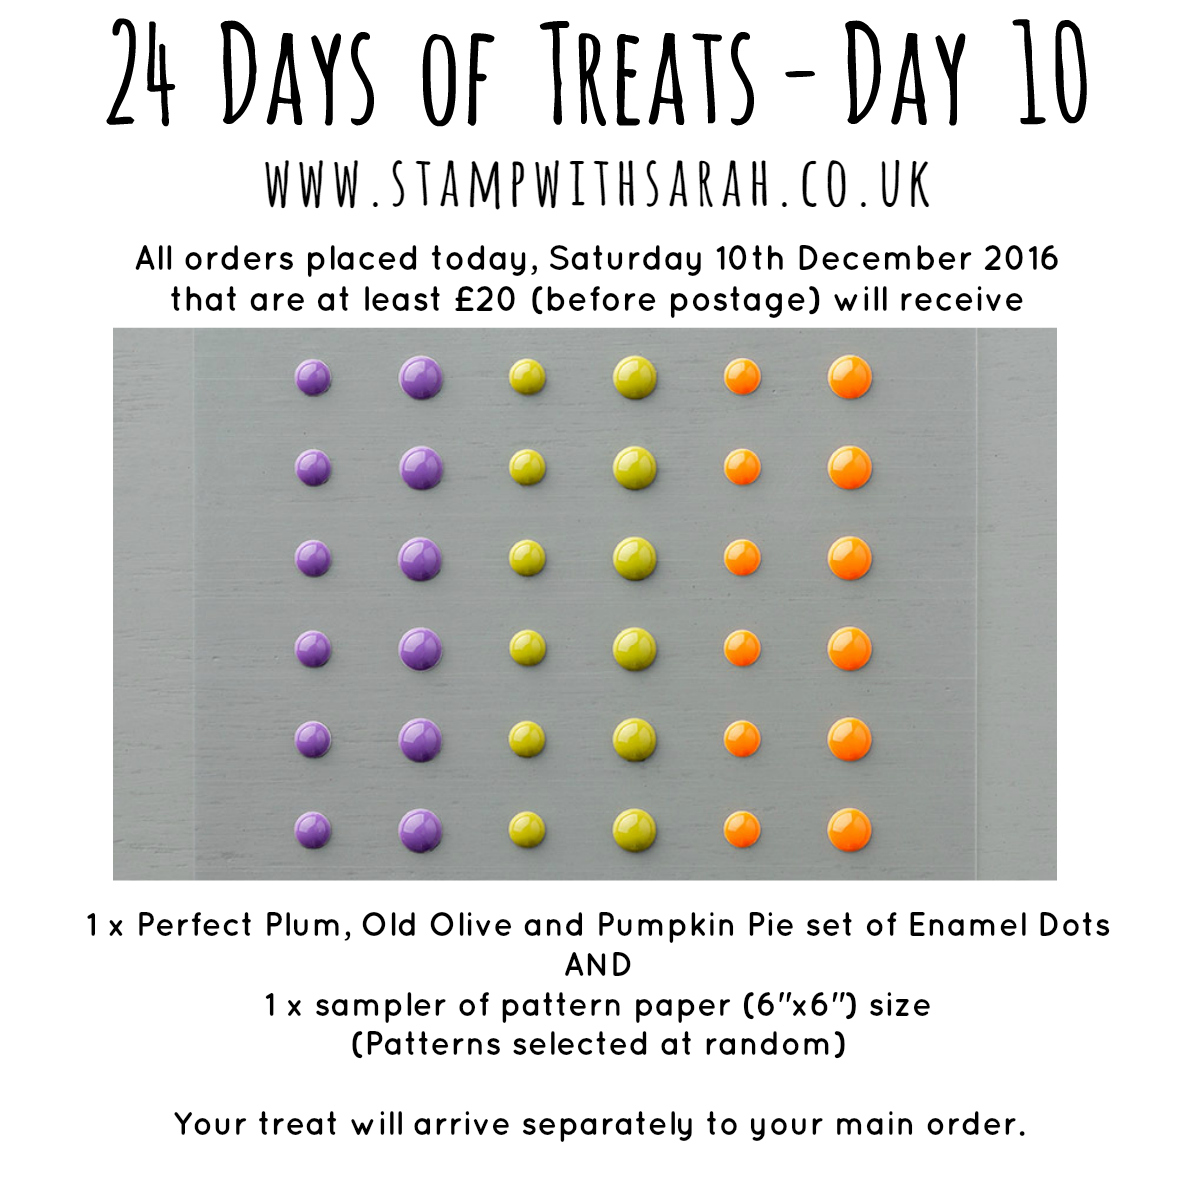 24-days-of-treats-day-10